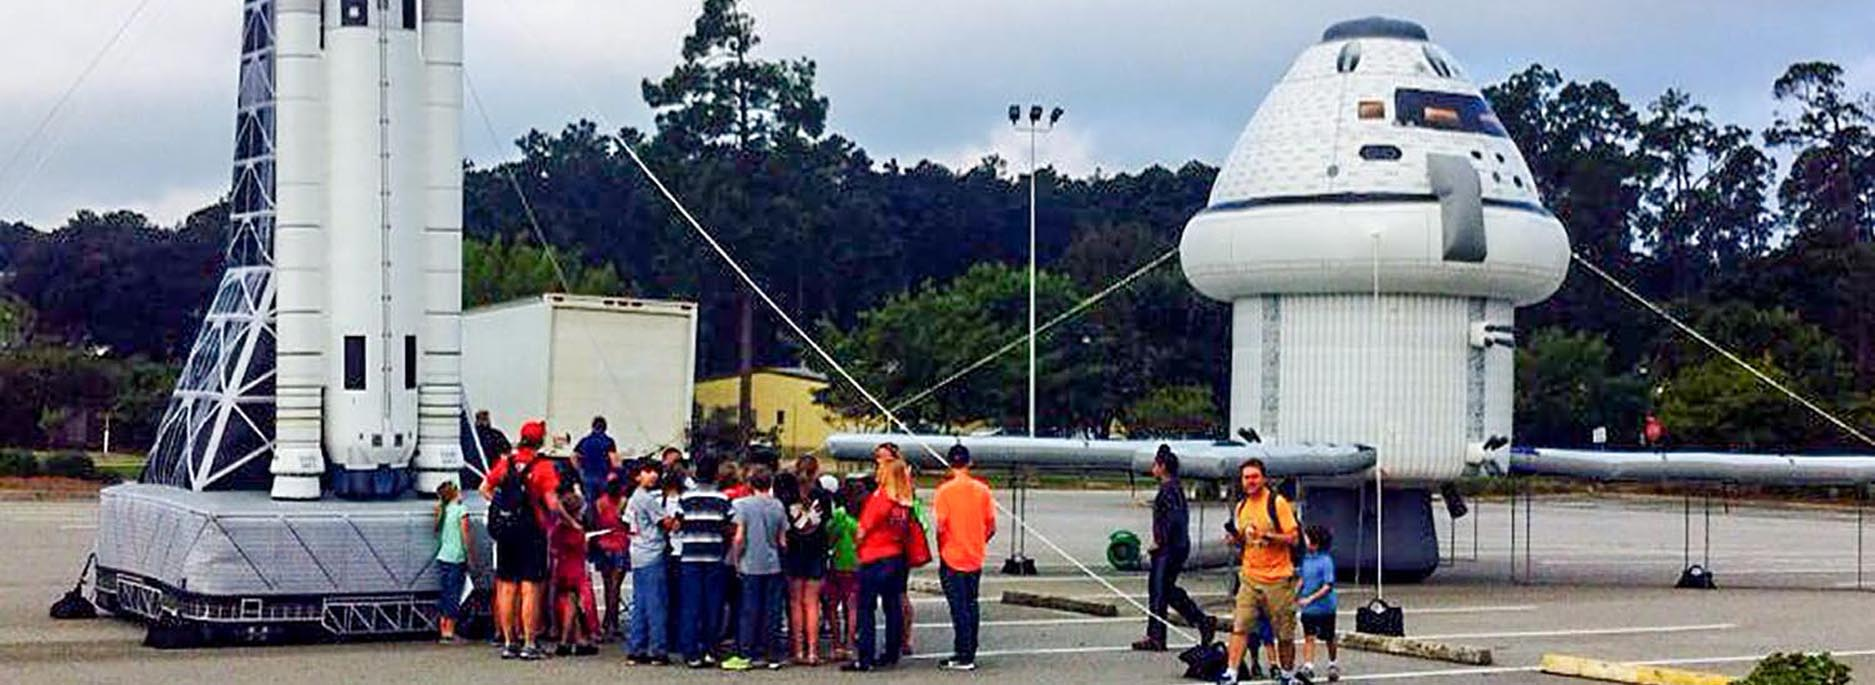 NASA space inflatable rocket and capsule installed at an event with multiple attendees standing next to it